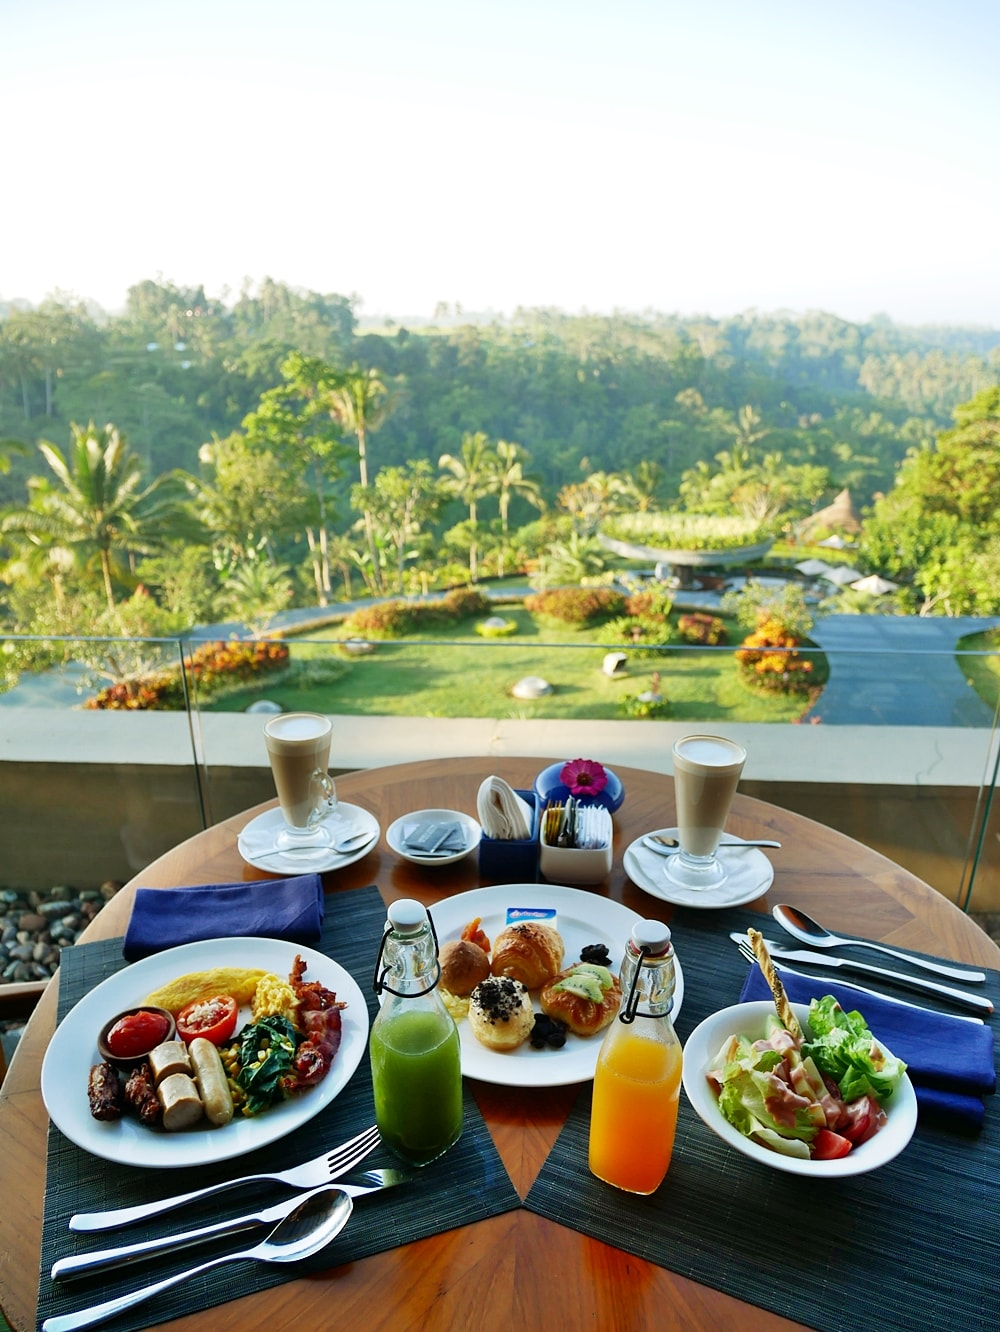 BEST POOL MOMENT & STAY AT PADMA RESORT UBUD BALI